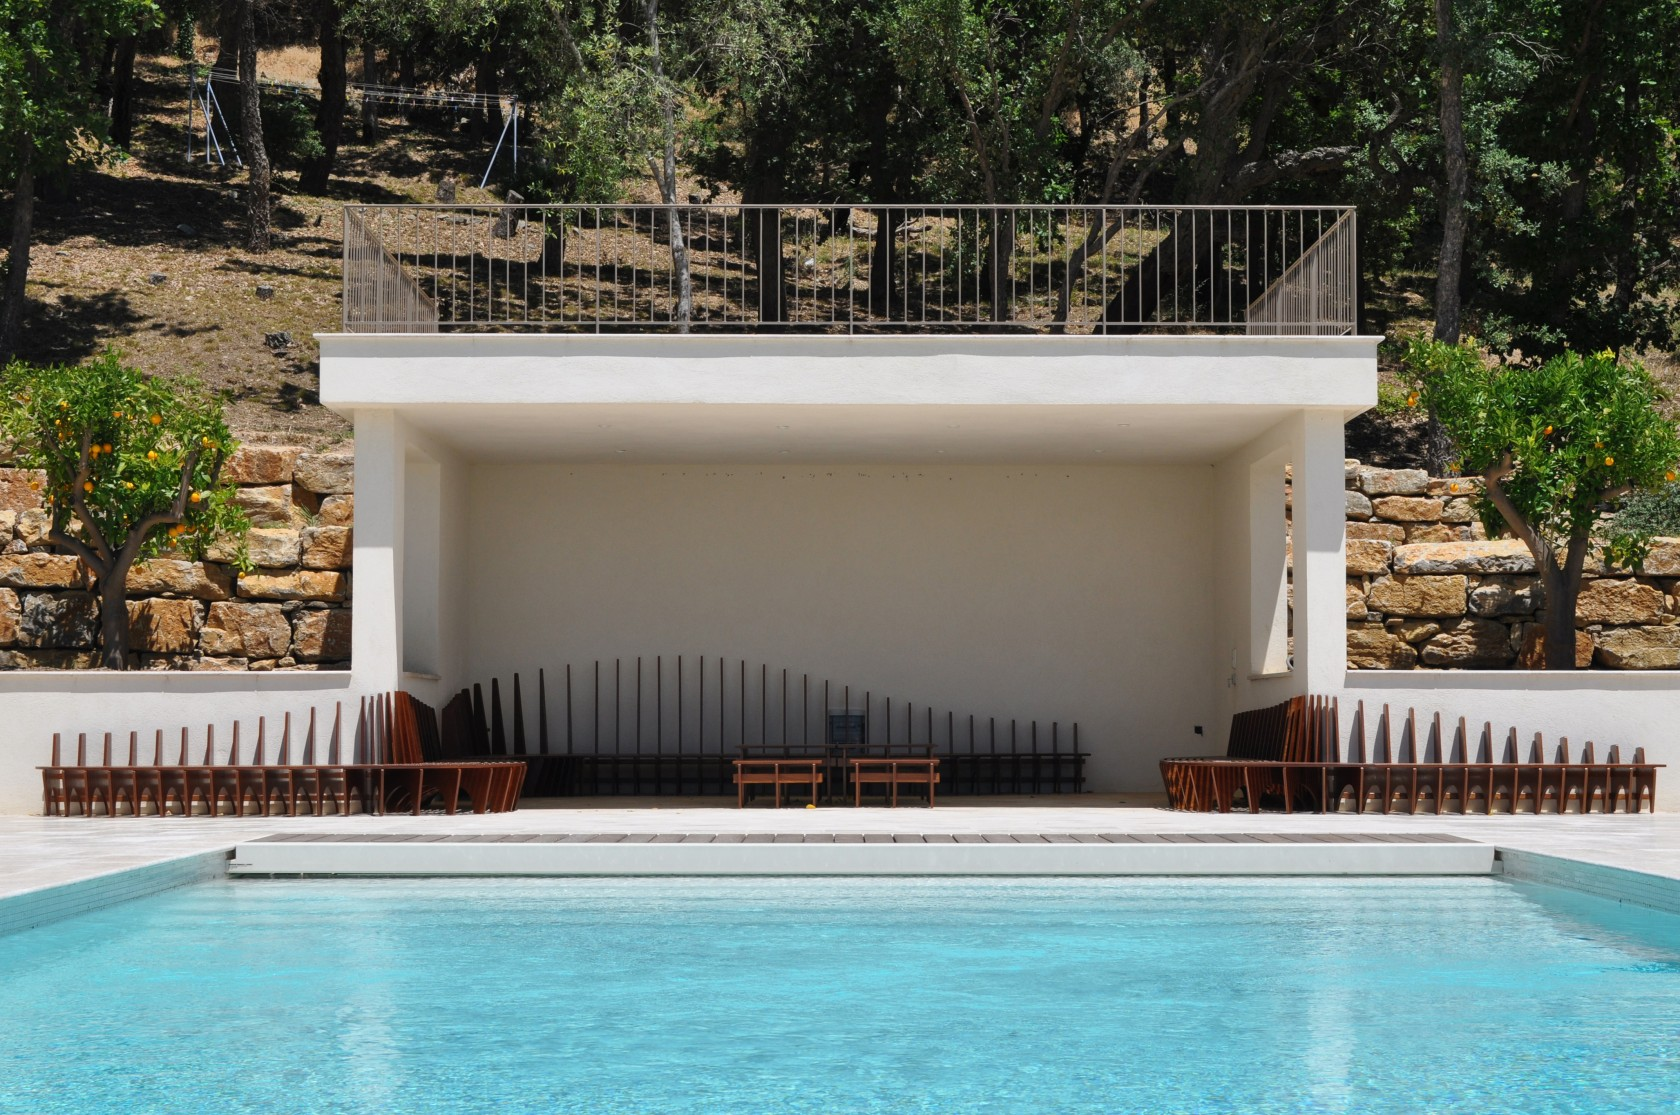 Bancs pool house ludovic avenel b niste cr ateur paris for Amenagement cuisine pool house